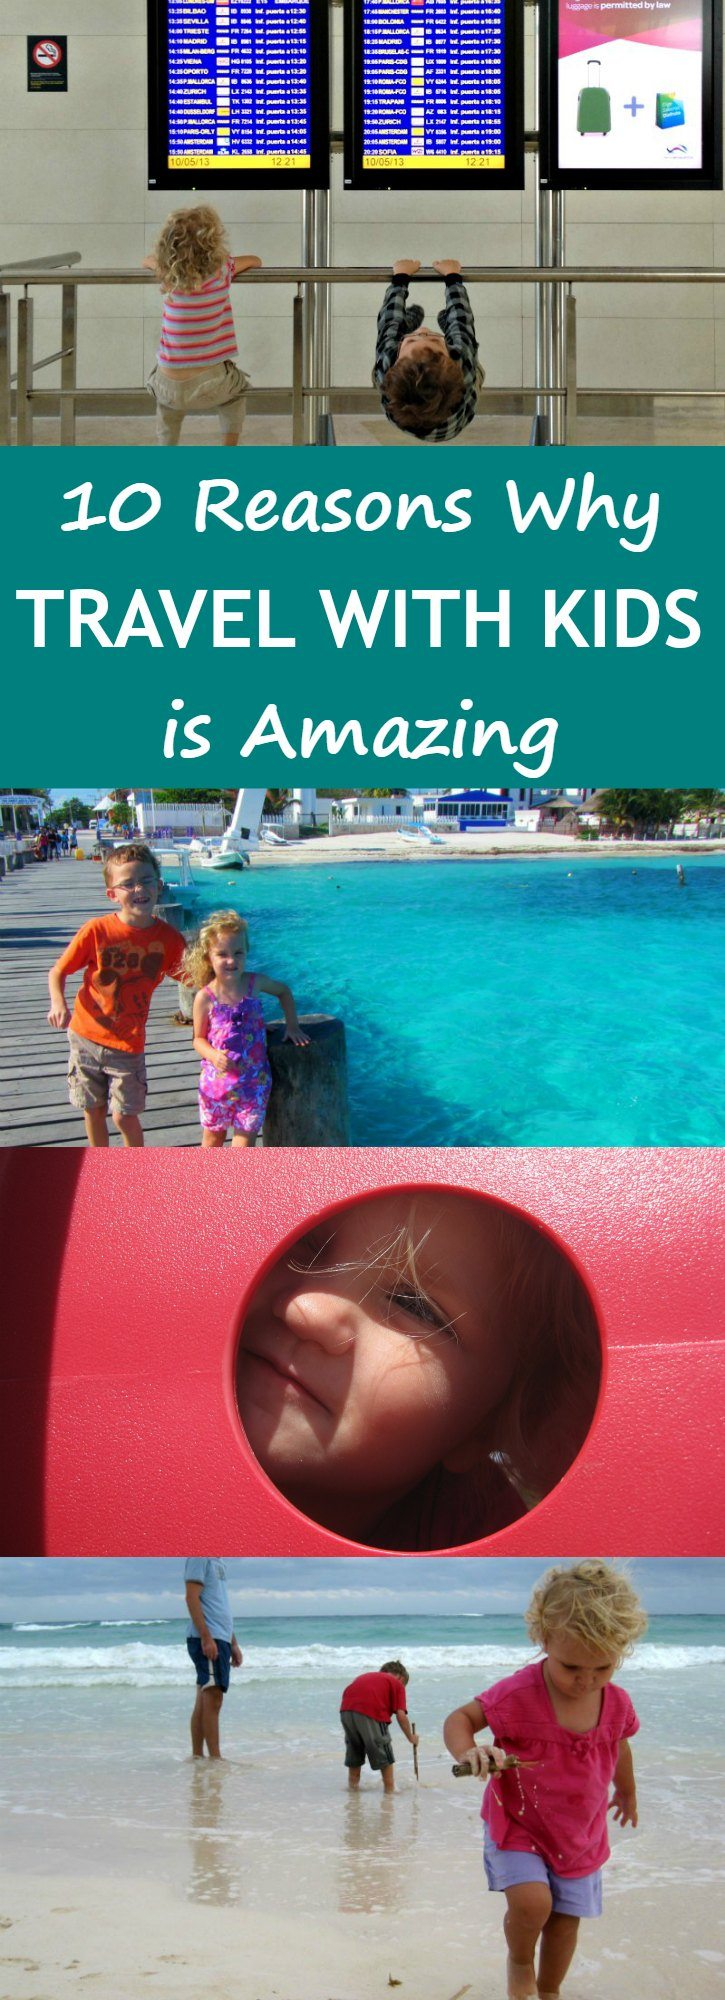 10 Reasons Why Travel With Kids is Amazing